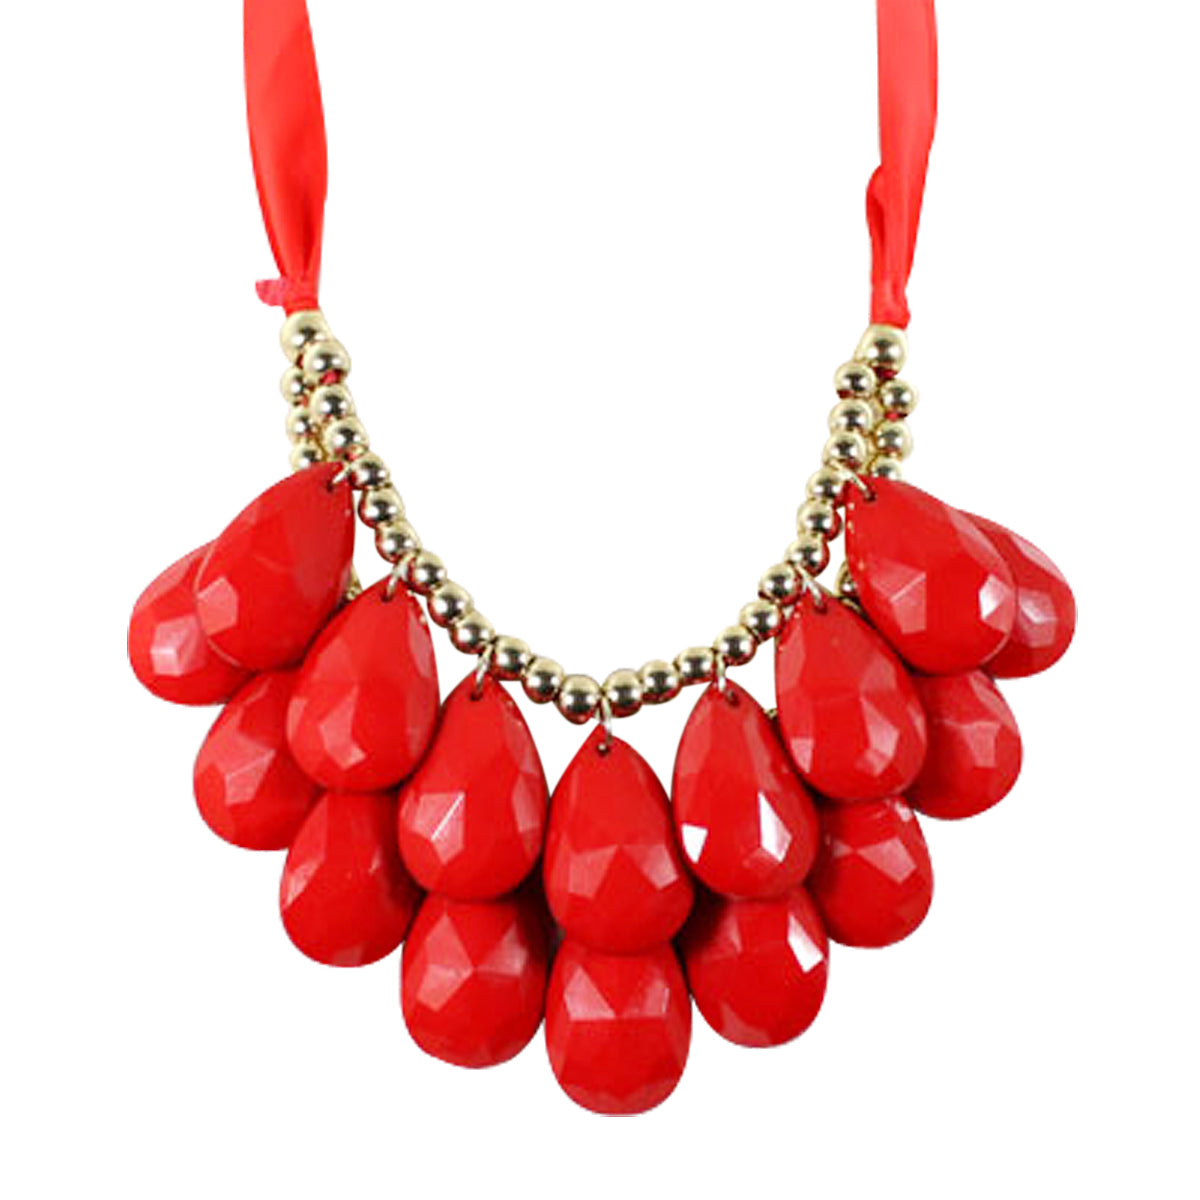 Double Layer Chunky Acrylic Teardrop Bib Necklace